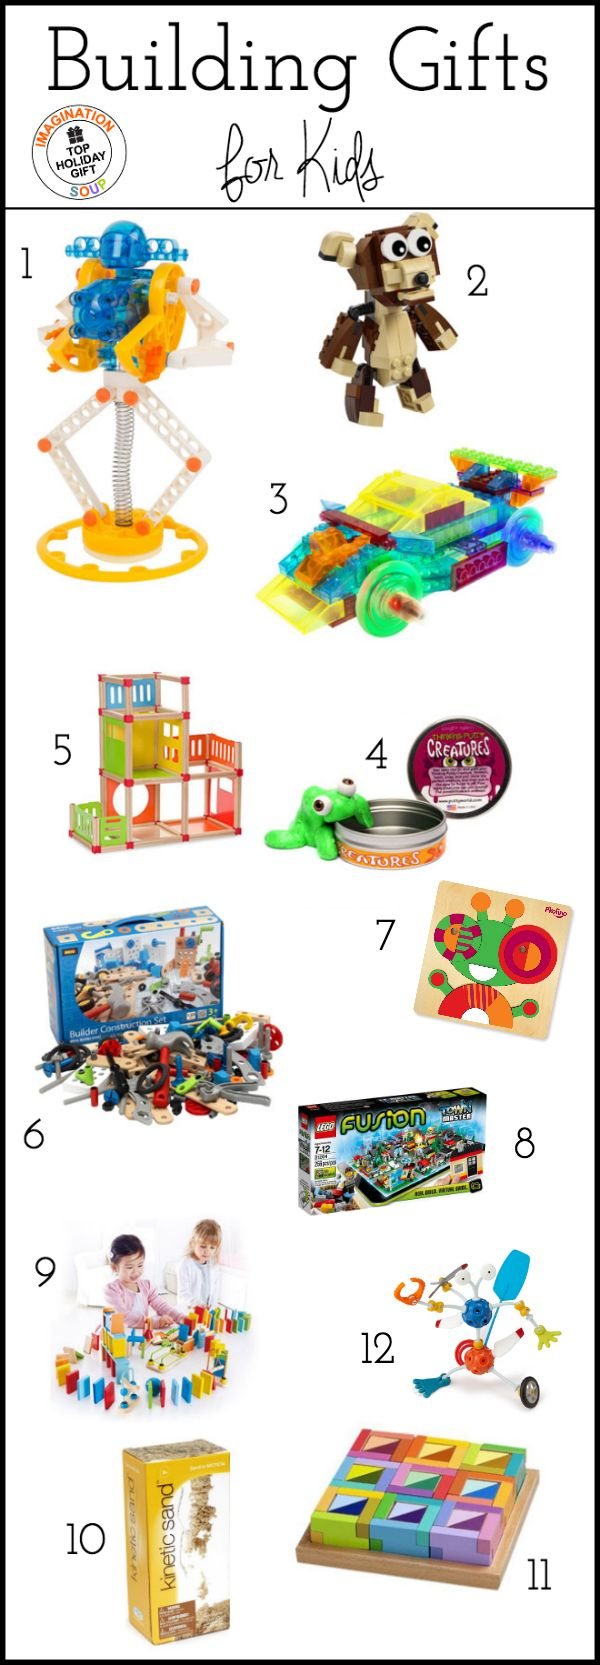 Top learning toys for building S.T.E.A.M. (science, technology, engineering, arts, and math) and fine motor, concentration, and visual-spatial skills. List includes age range and descriptions for each toy.